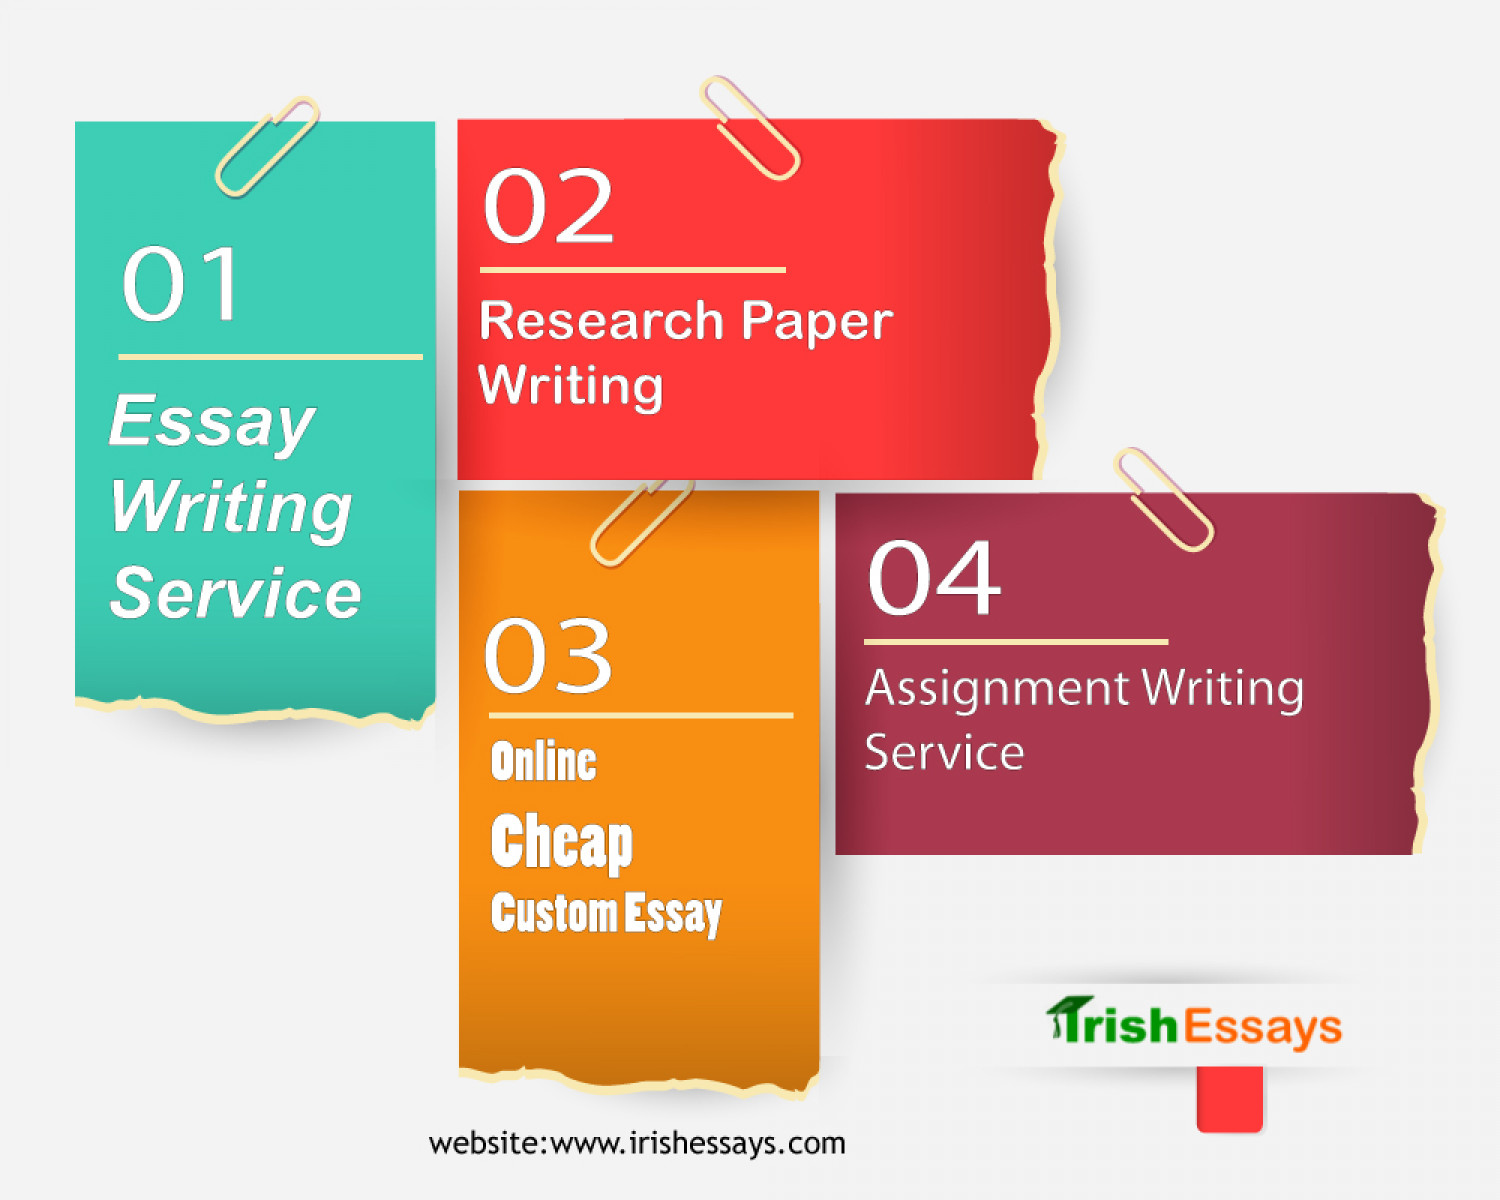 Now you can pay online for professional essay writing | Visual.ly